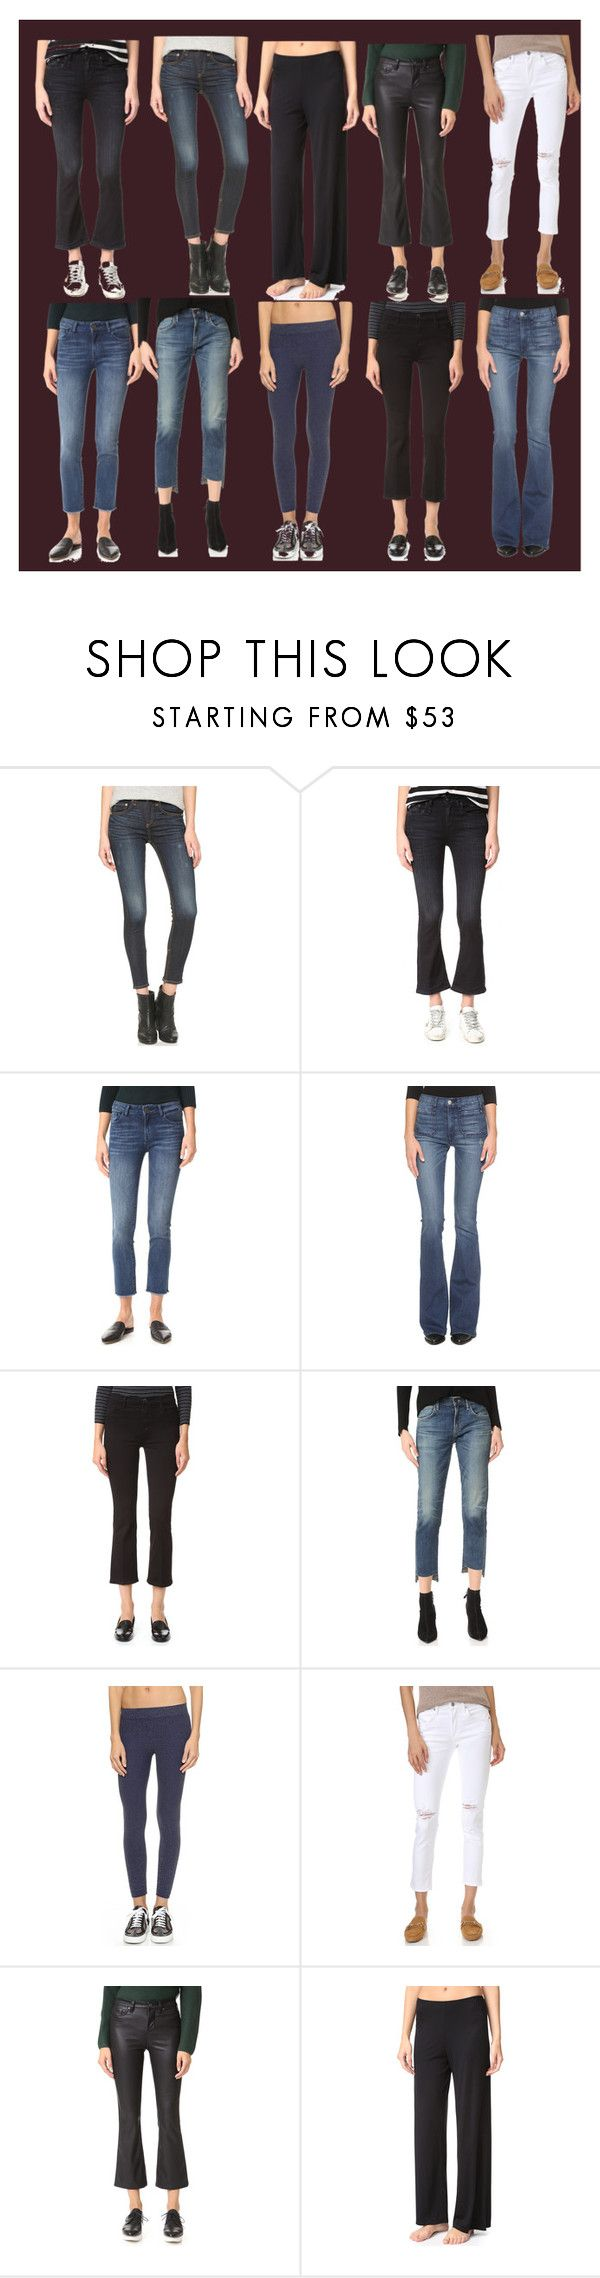 """pants jeans"" by monica022 ❤ liked on Polyvore featuring rag & bone/JEAN, R13, DL1961 Premium Denim, McGuire, J Brand, Citizens of Humanity, Phat Buddha, Blank Denim, Only Hearts and vintage"